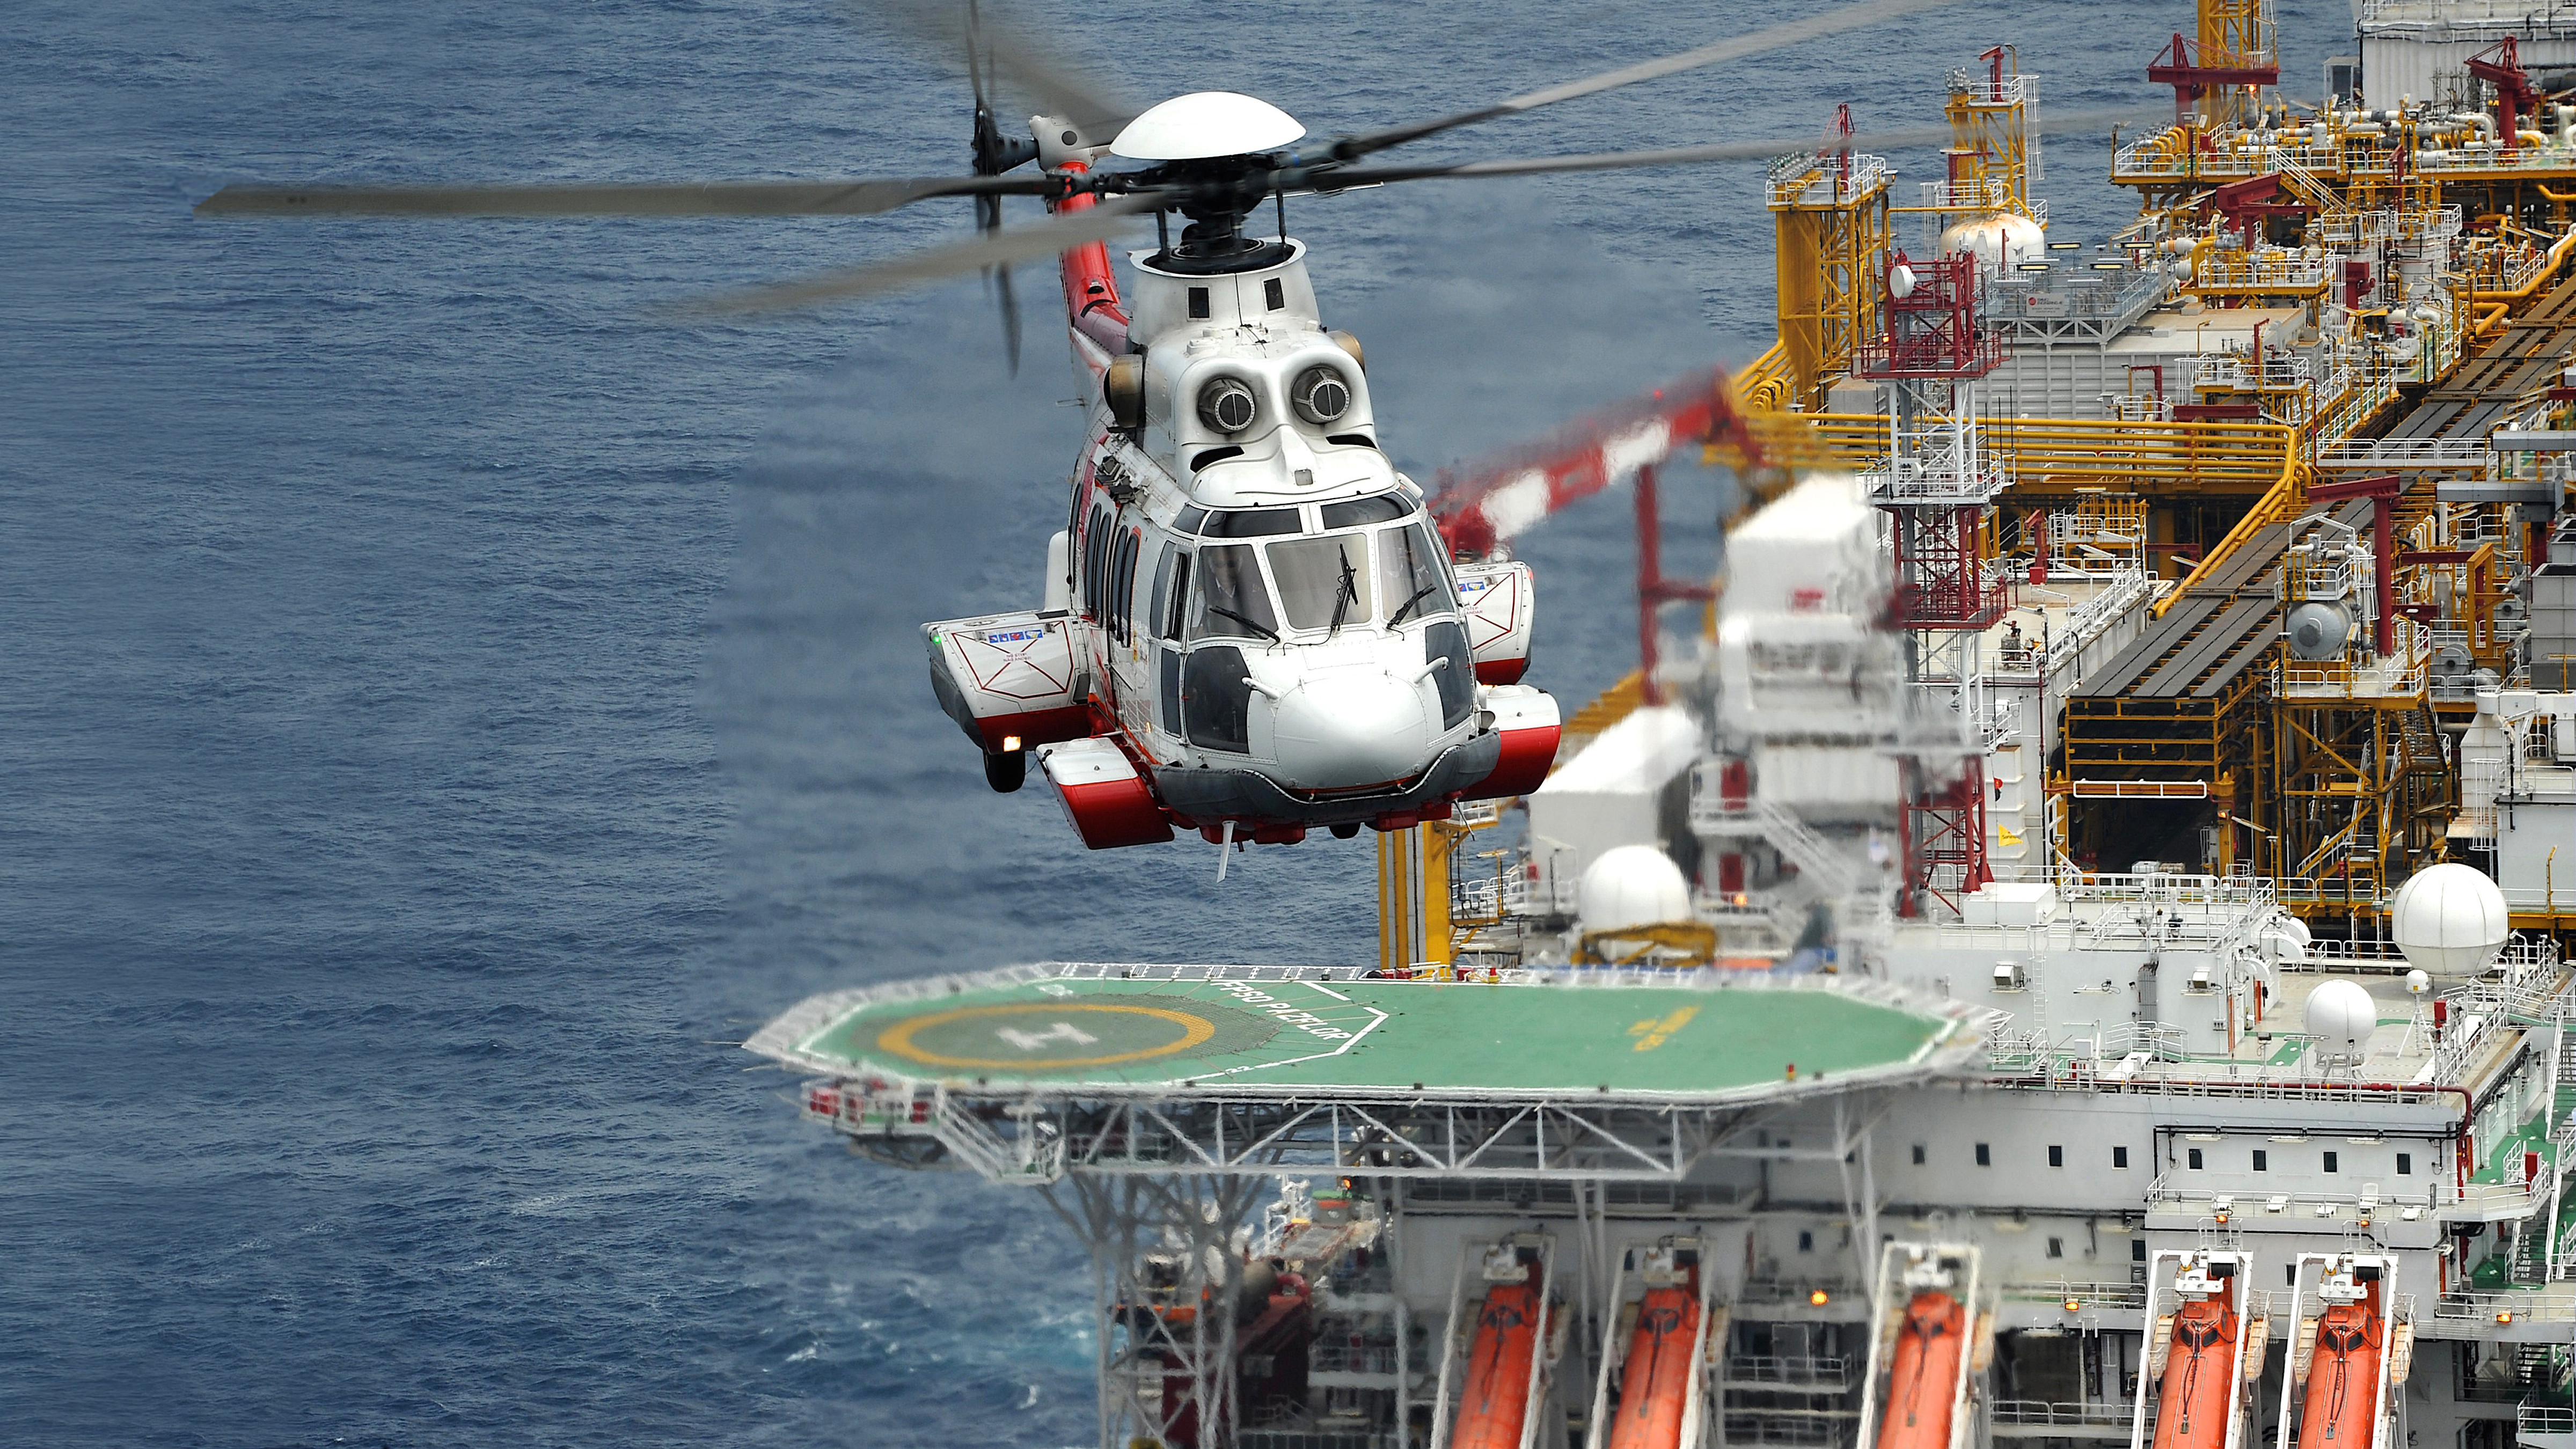 Airbus helicopter sea ocean platform aviation offshore